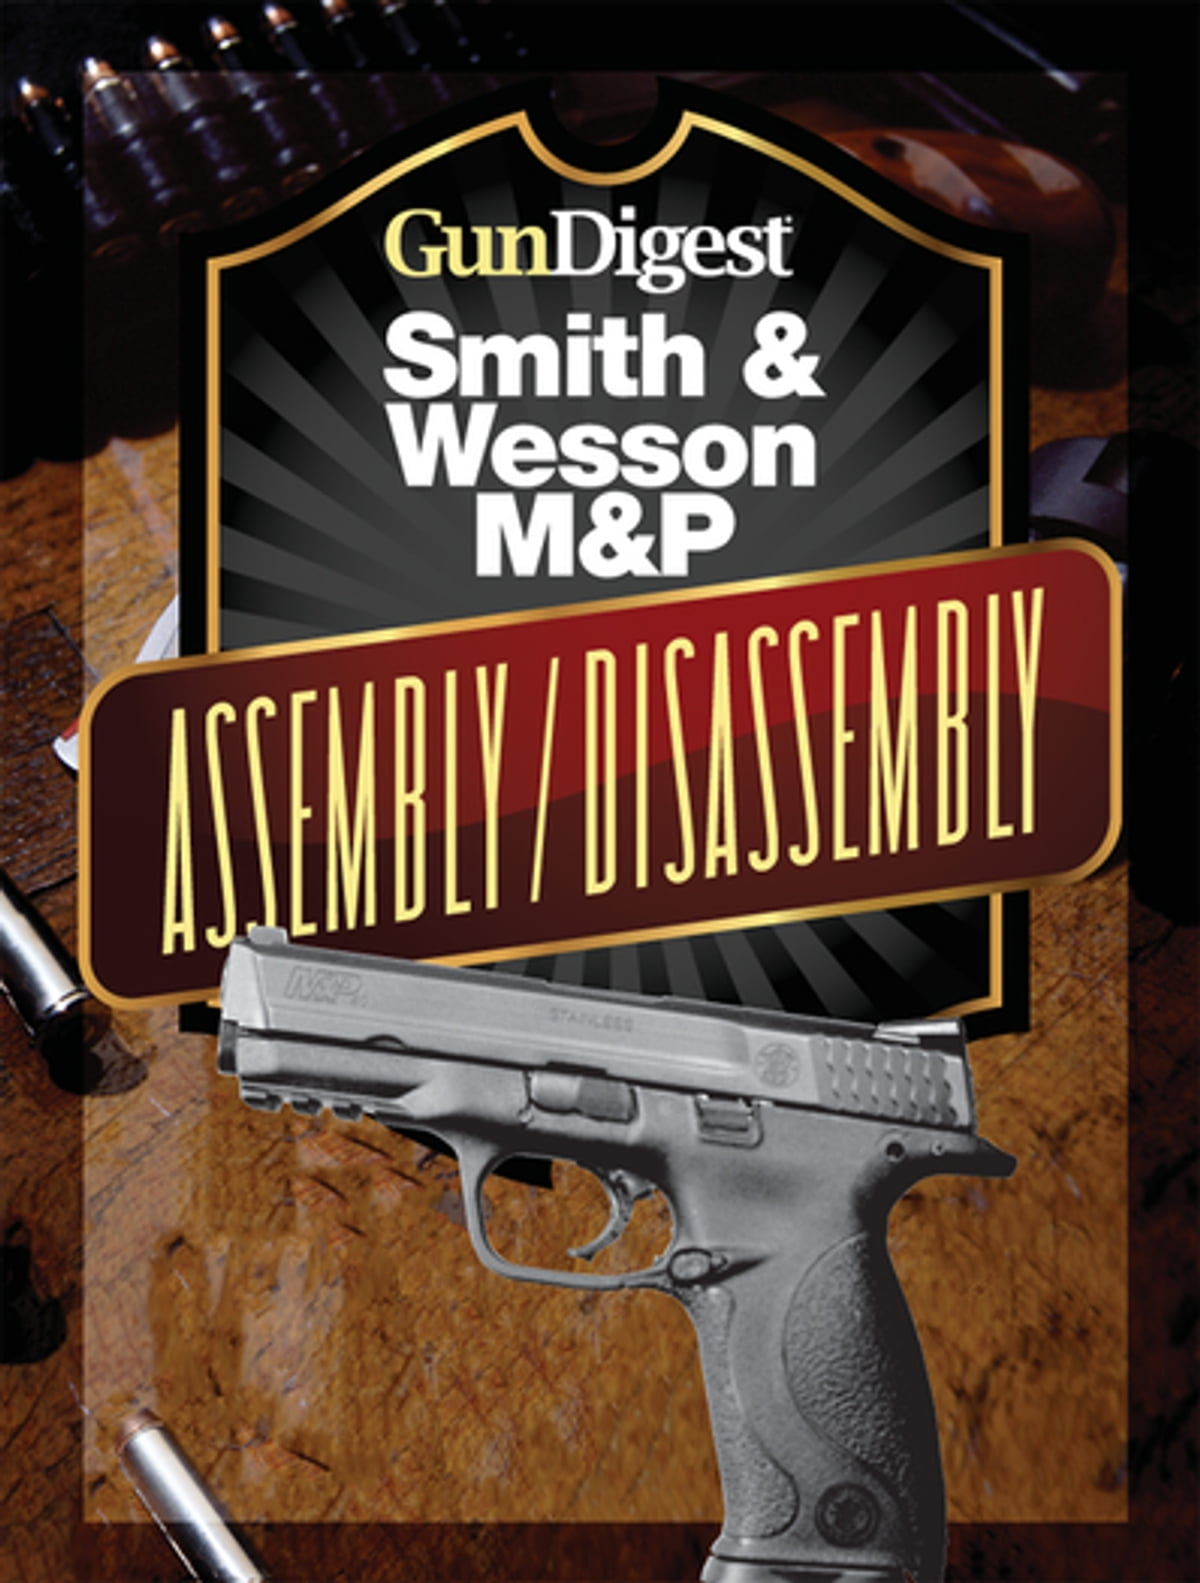 hight resolution of gun digest smith wesson m p assembly disassembly instructions ebook by j b wood 9781440231759 rakuten kobo